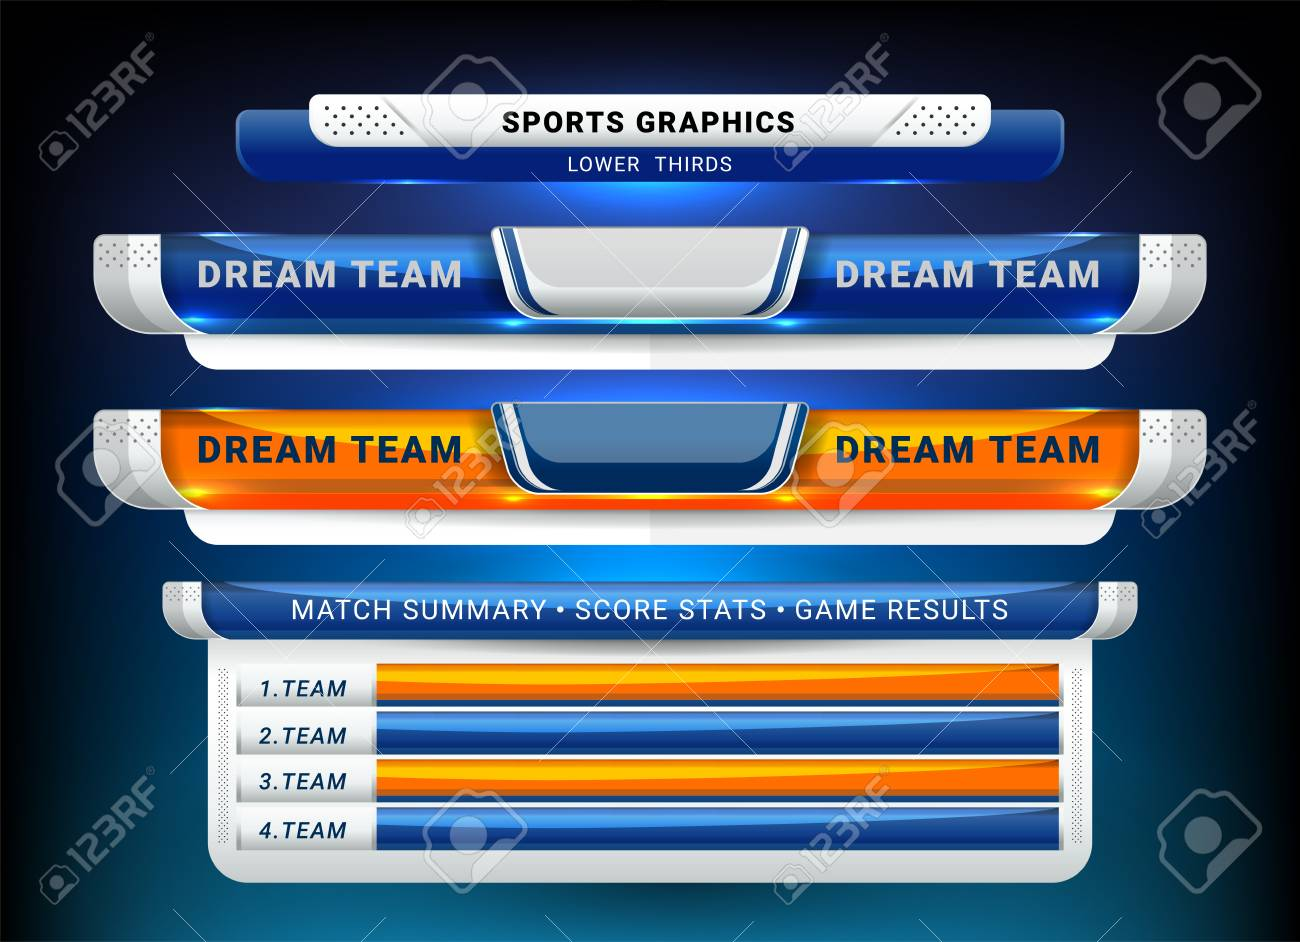 Scoreboard Broadcast and Lower Thirds Template for sport soccer and football - 126749694